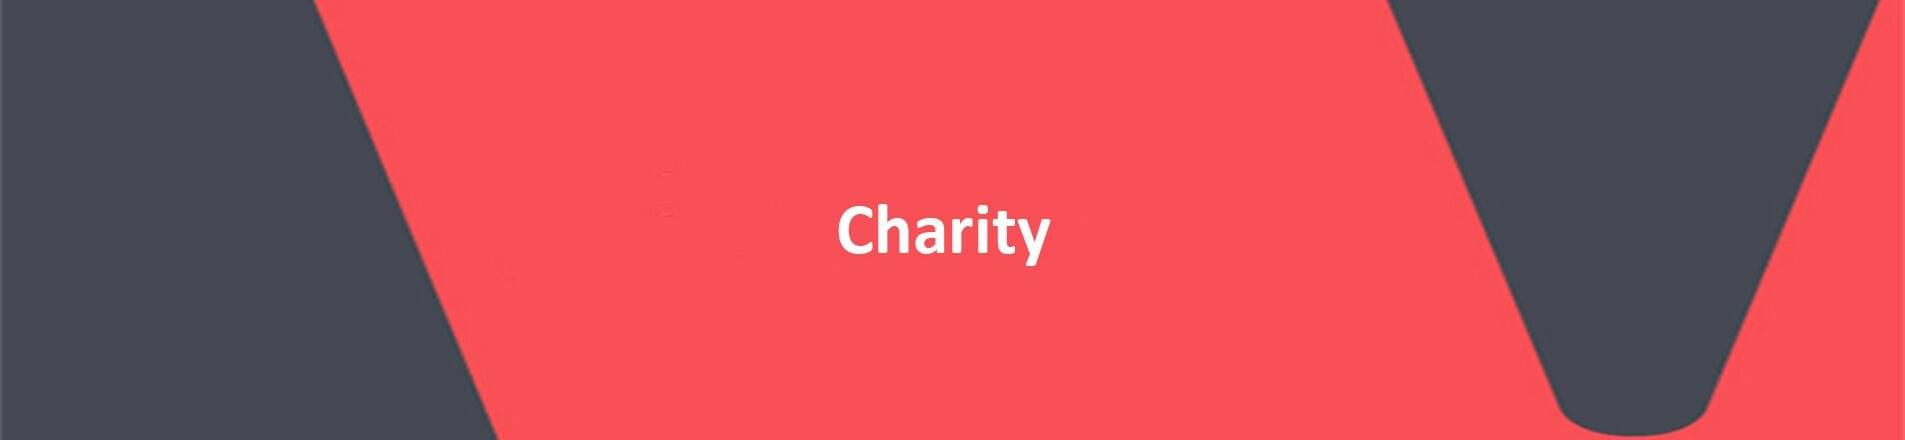 The word 'Charity' on red VERCIDA background